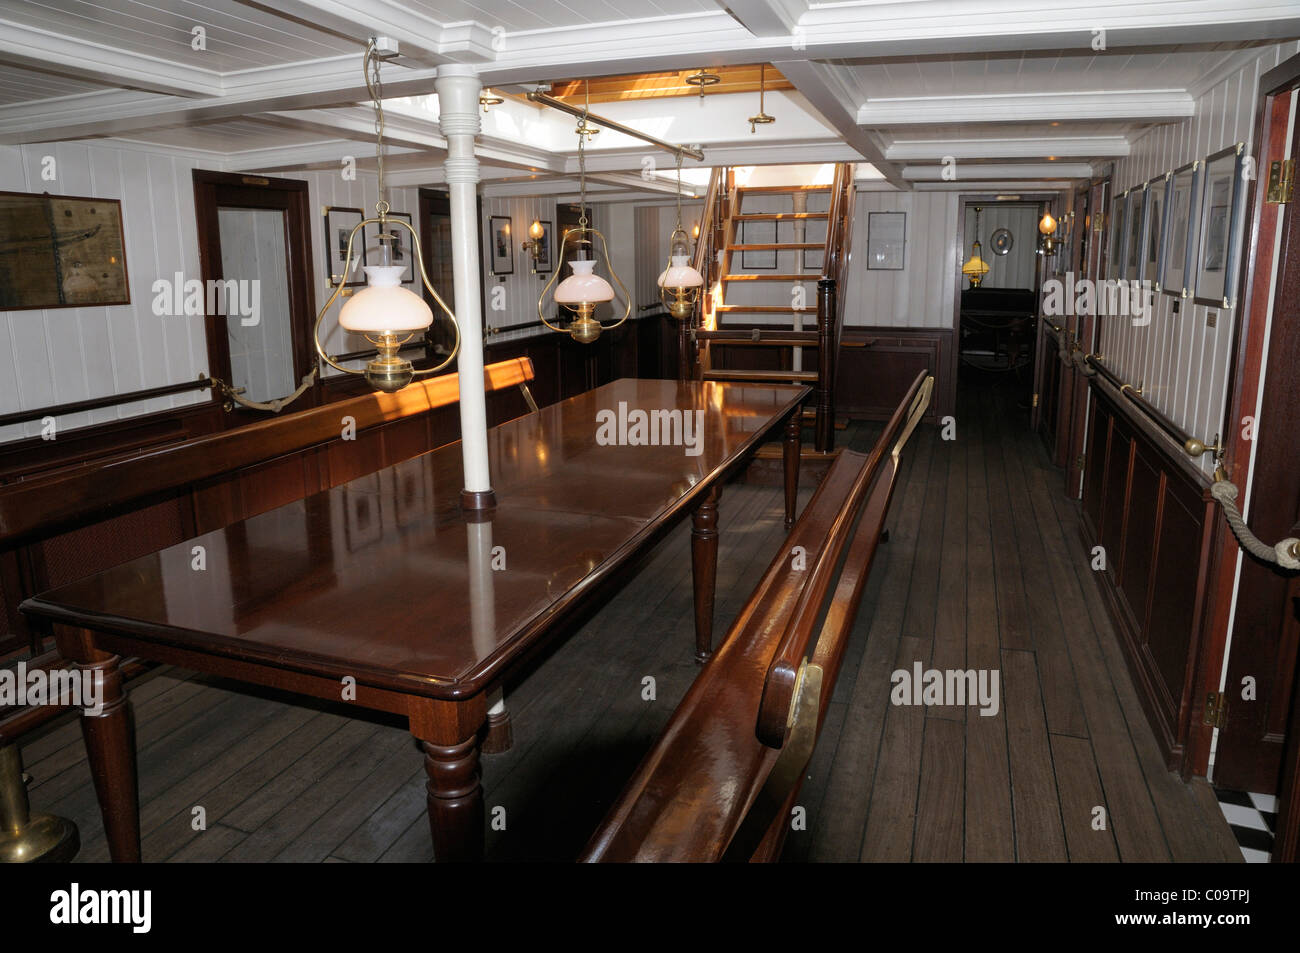 Officer's mess, museum ship, Rickmer Rickmers, Hamburg, Germany, Europe Stock Photo